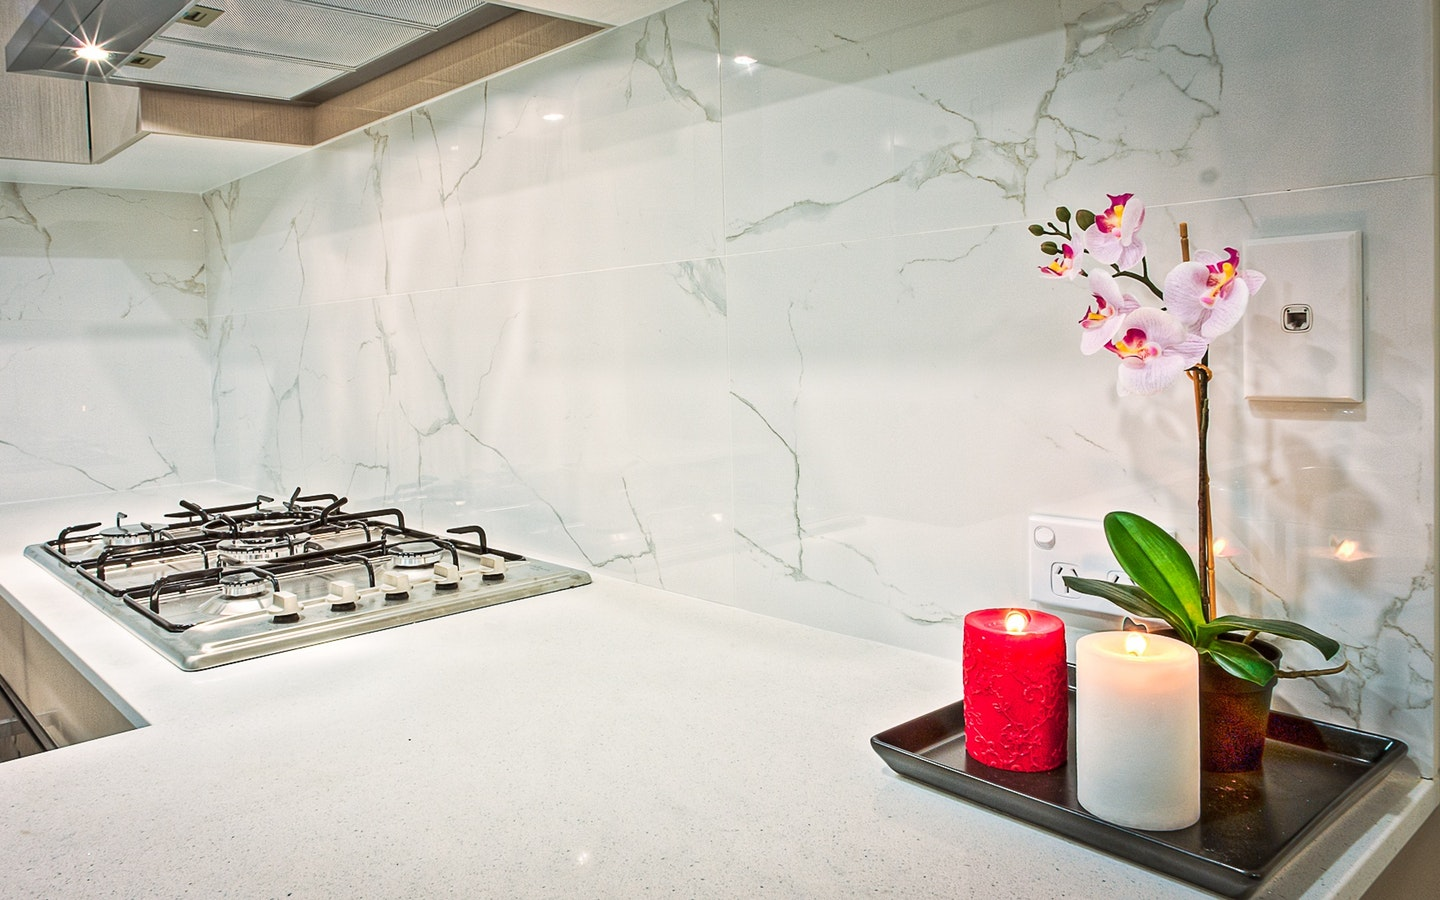 To properly light up a kitchen is one of the most important home lighting tips.